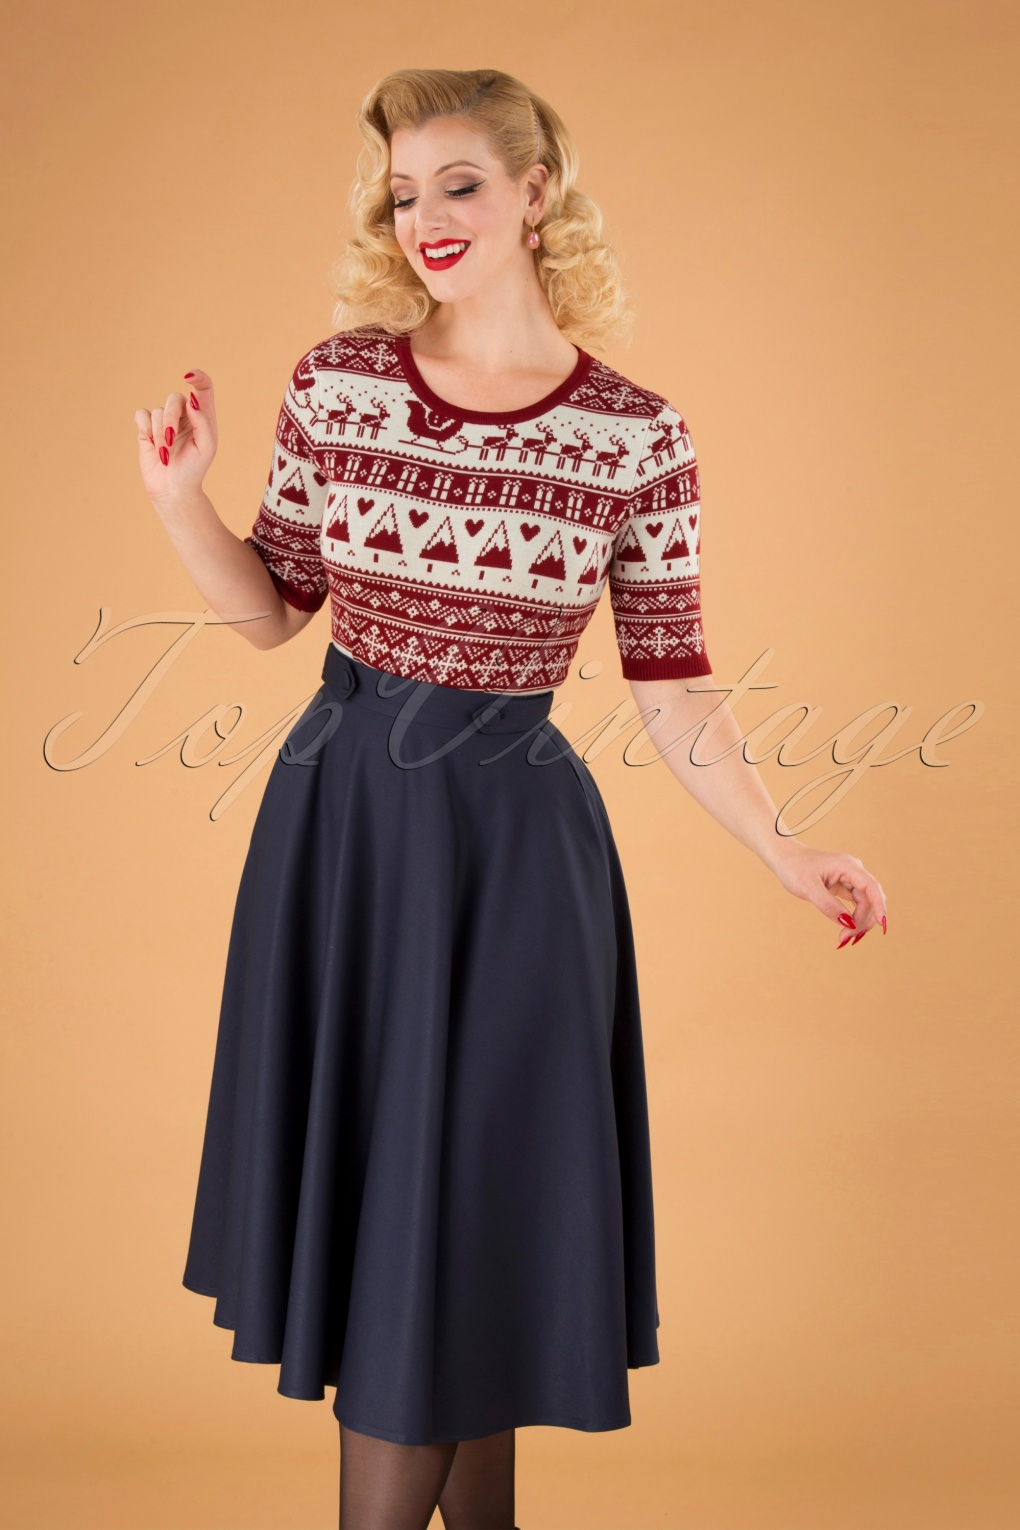 1940s Style Skirts- Vintage High Waisted Skirts 50s Di Di Swing Skirt in Night Blue £35.11 AT vintagedancer.com